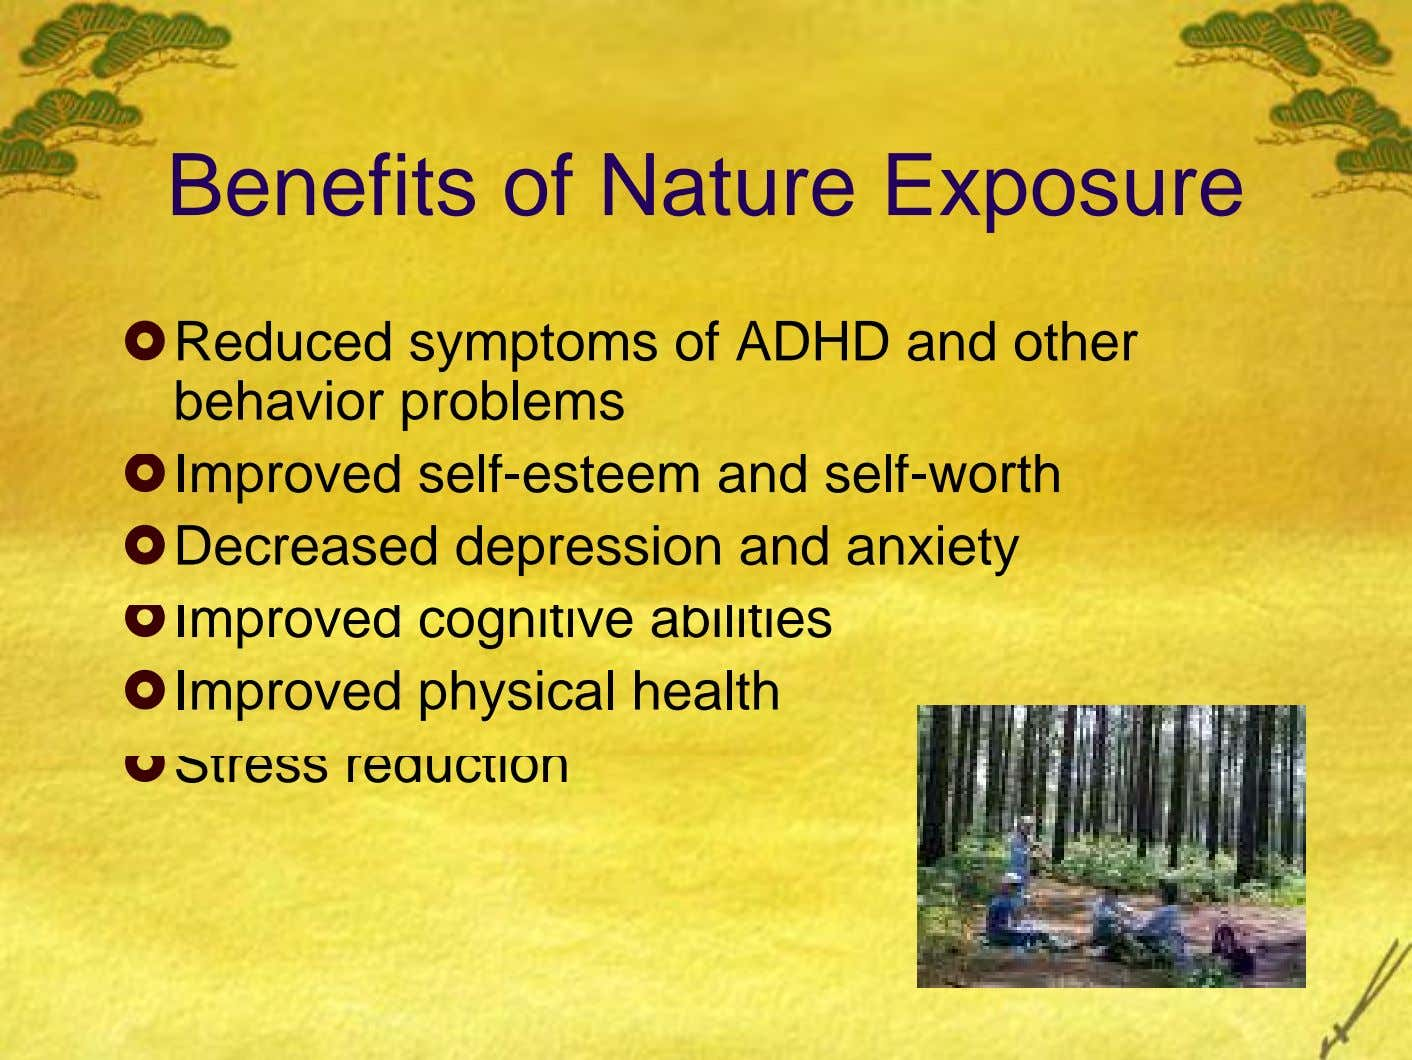 Benefits of Nature Exposure Reduced symptoms of ADHD and other behavior problems Improved self-esteem and self-worth